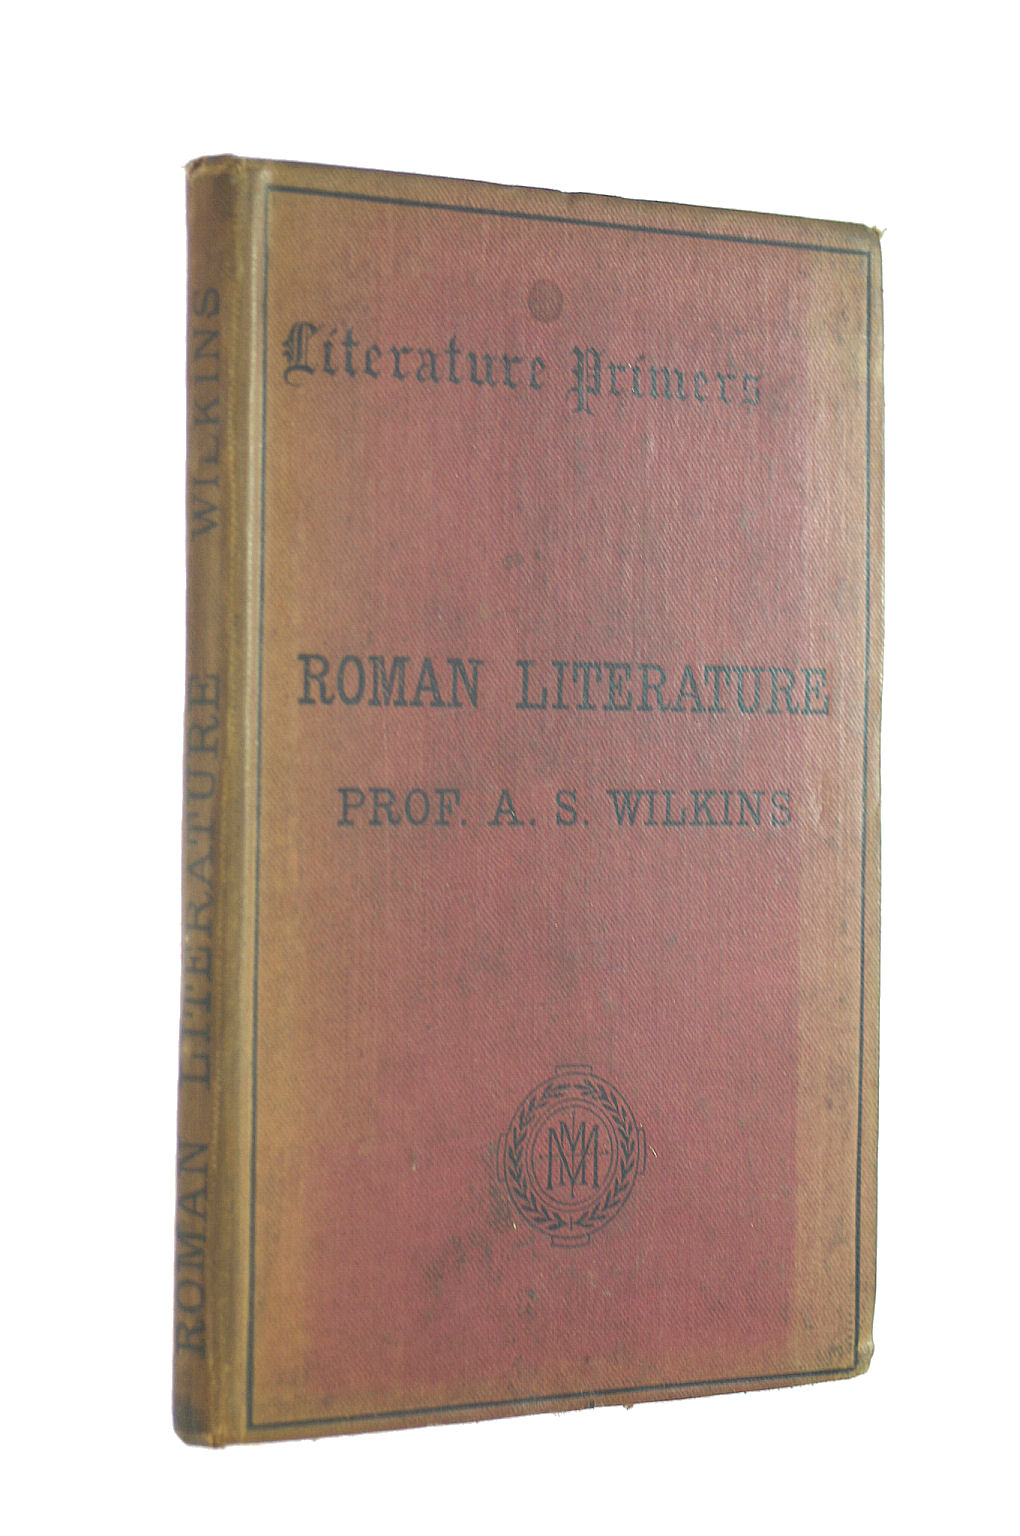 Image for Roman literature (Literature primers)